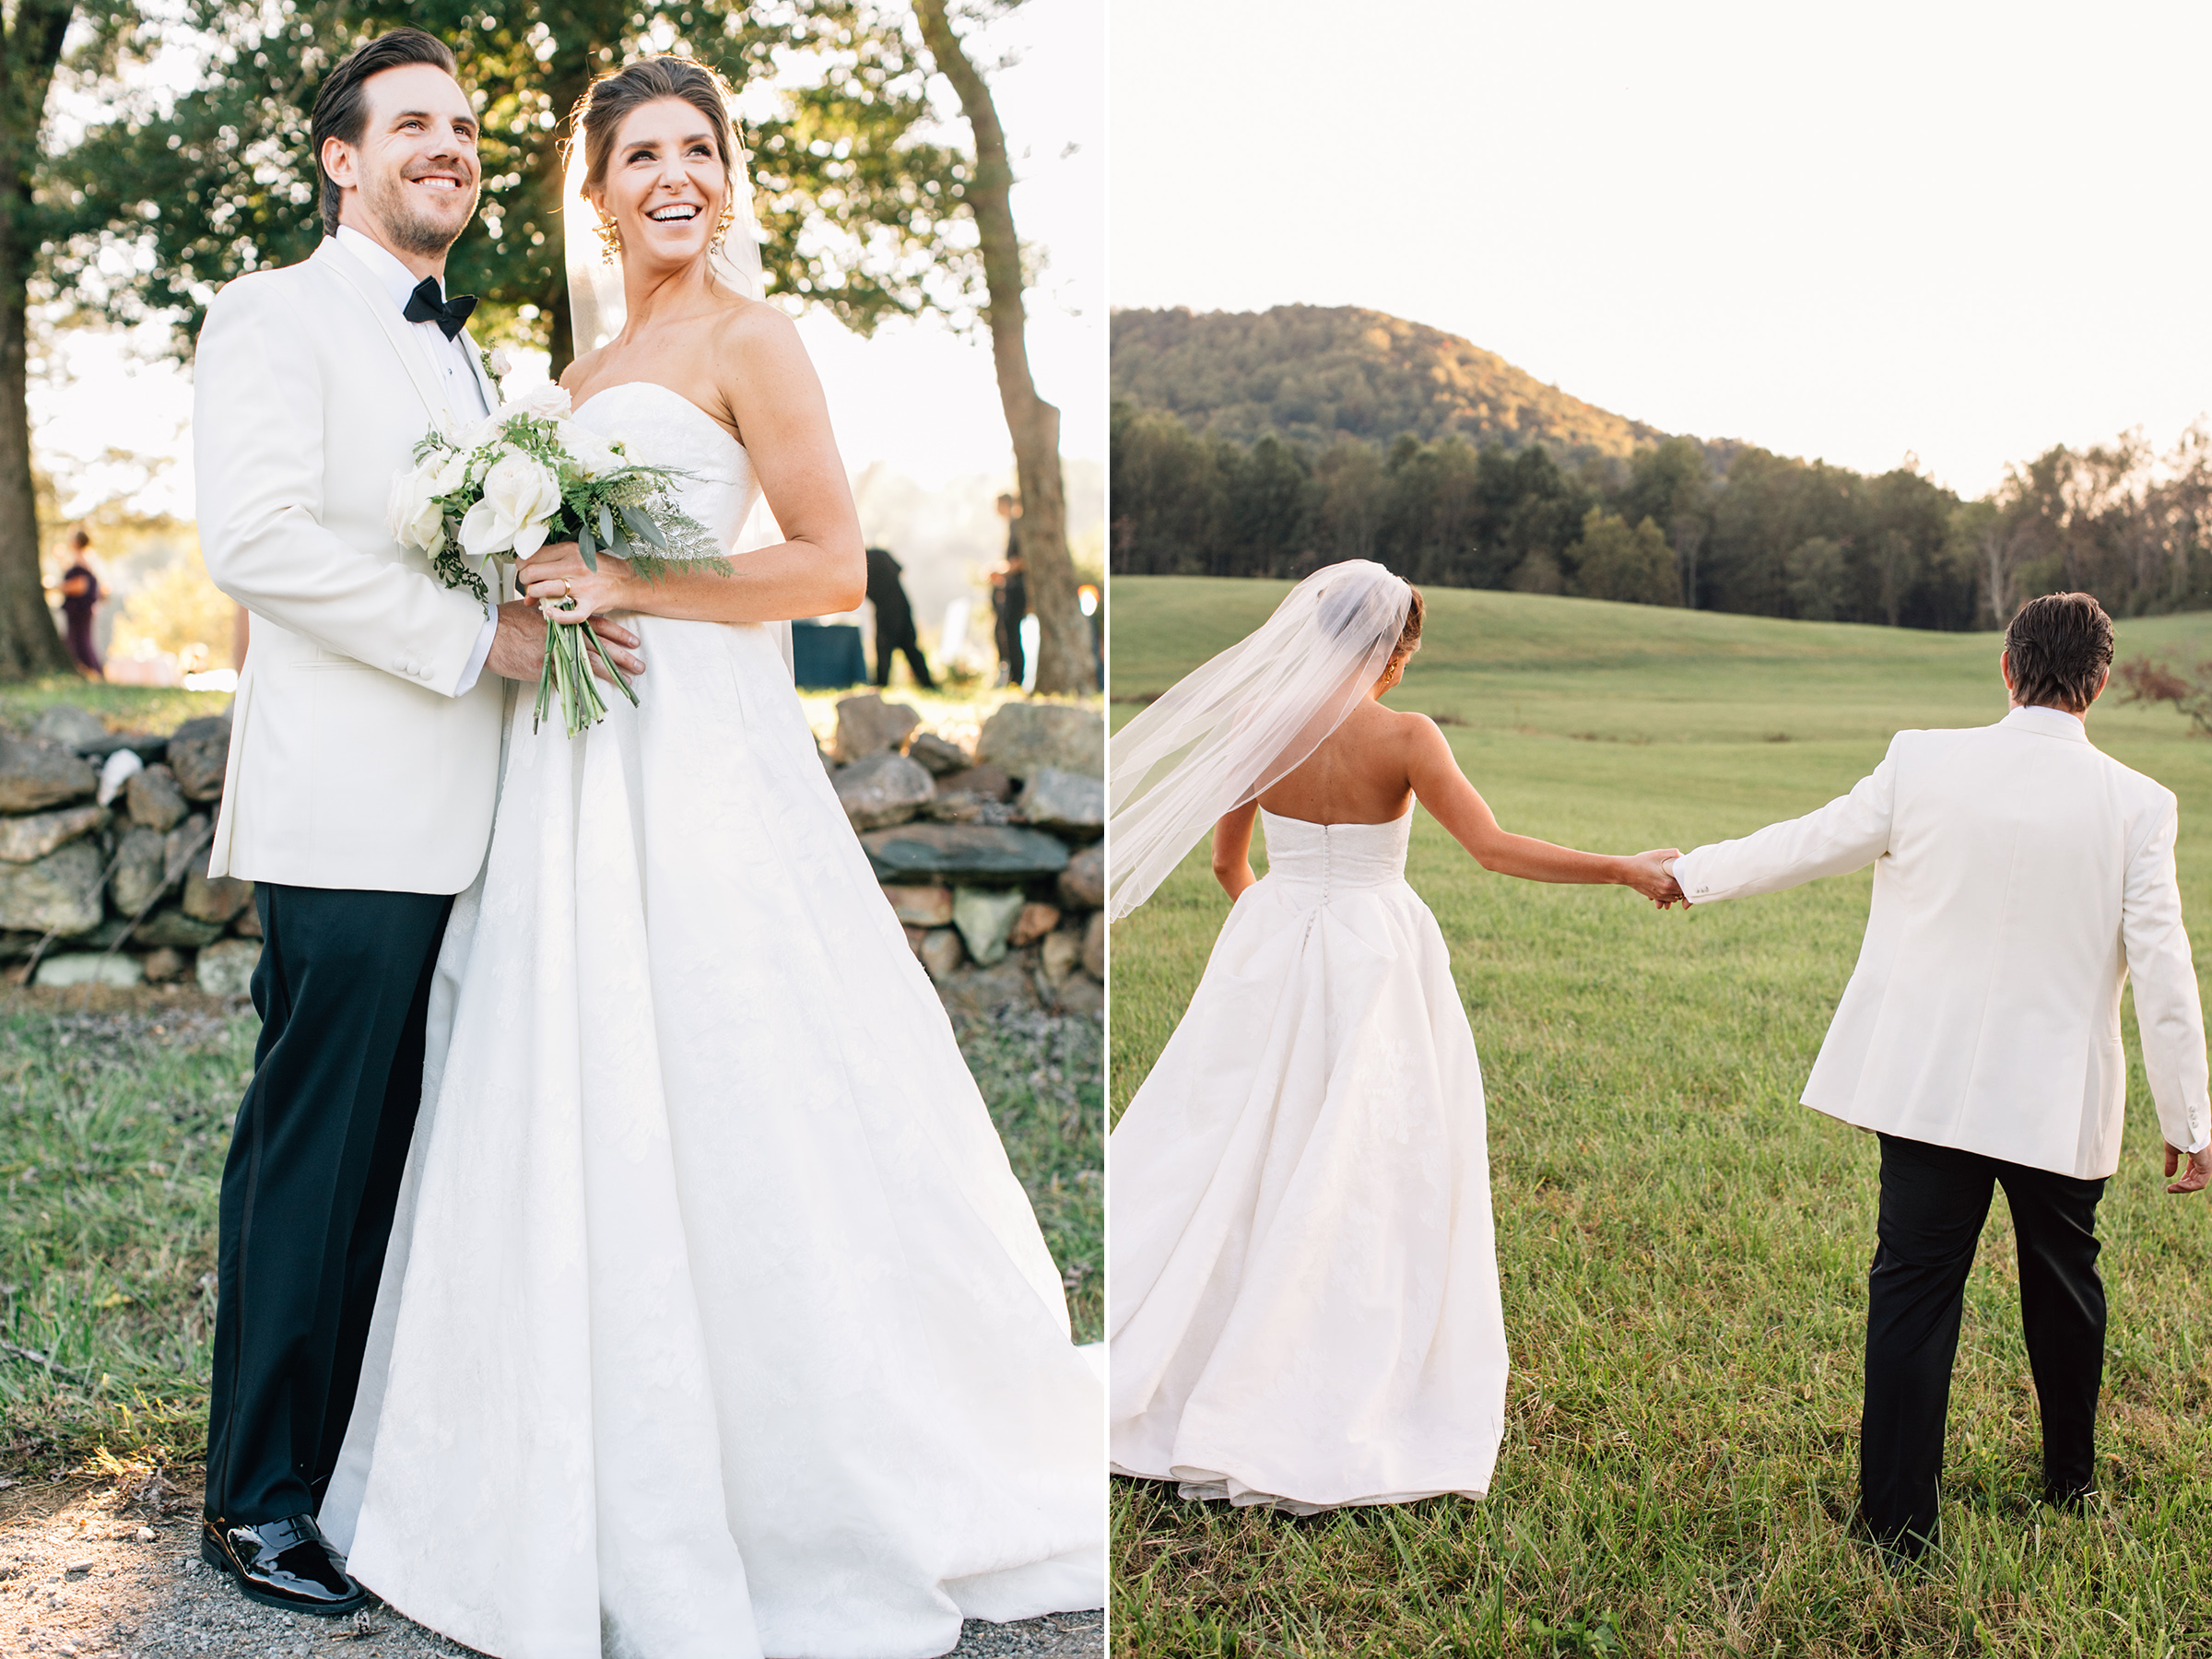 KatieStoopsPhotography-charlottesville wedding-farm wedding31.jpg